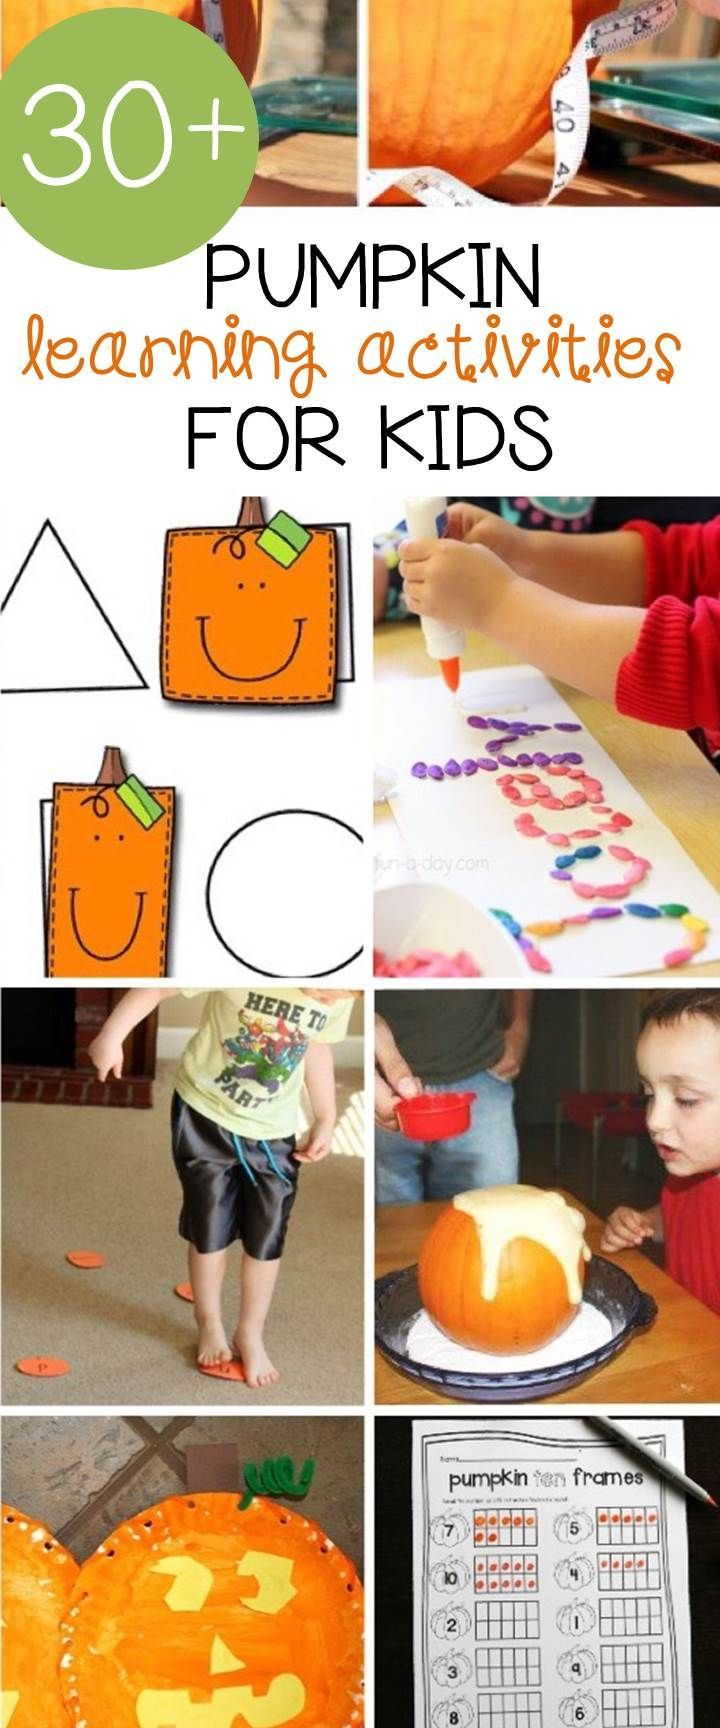 Over 30 awesome pumpkin activities for kids to try out this fall in your classroom or home. Perfect for preschool, kindergarten, and 1st grade.